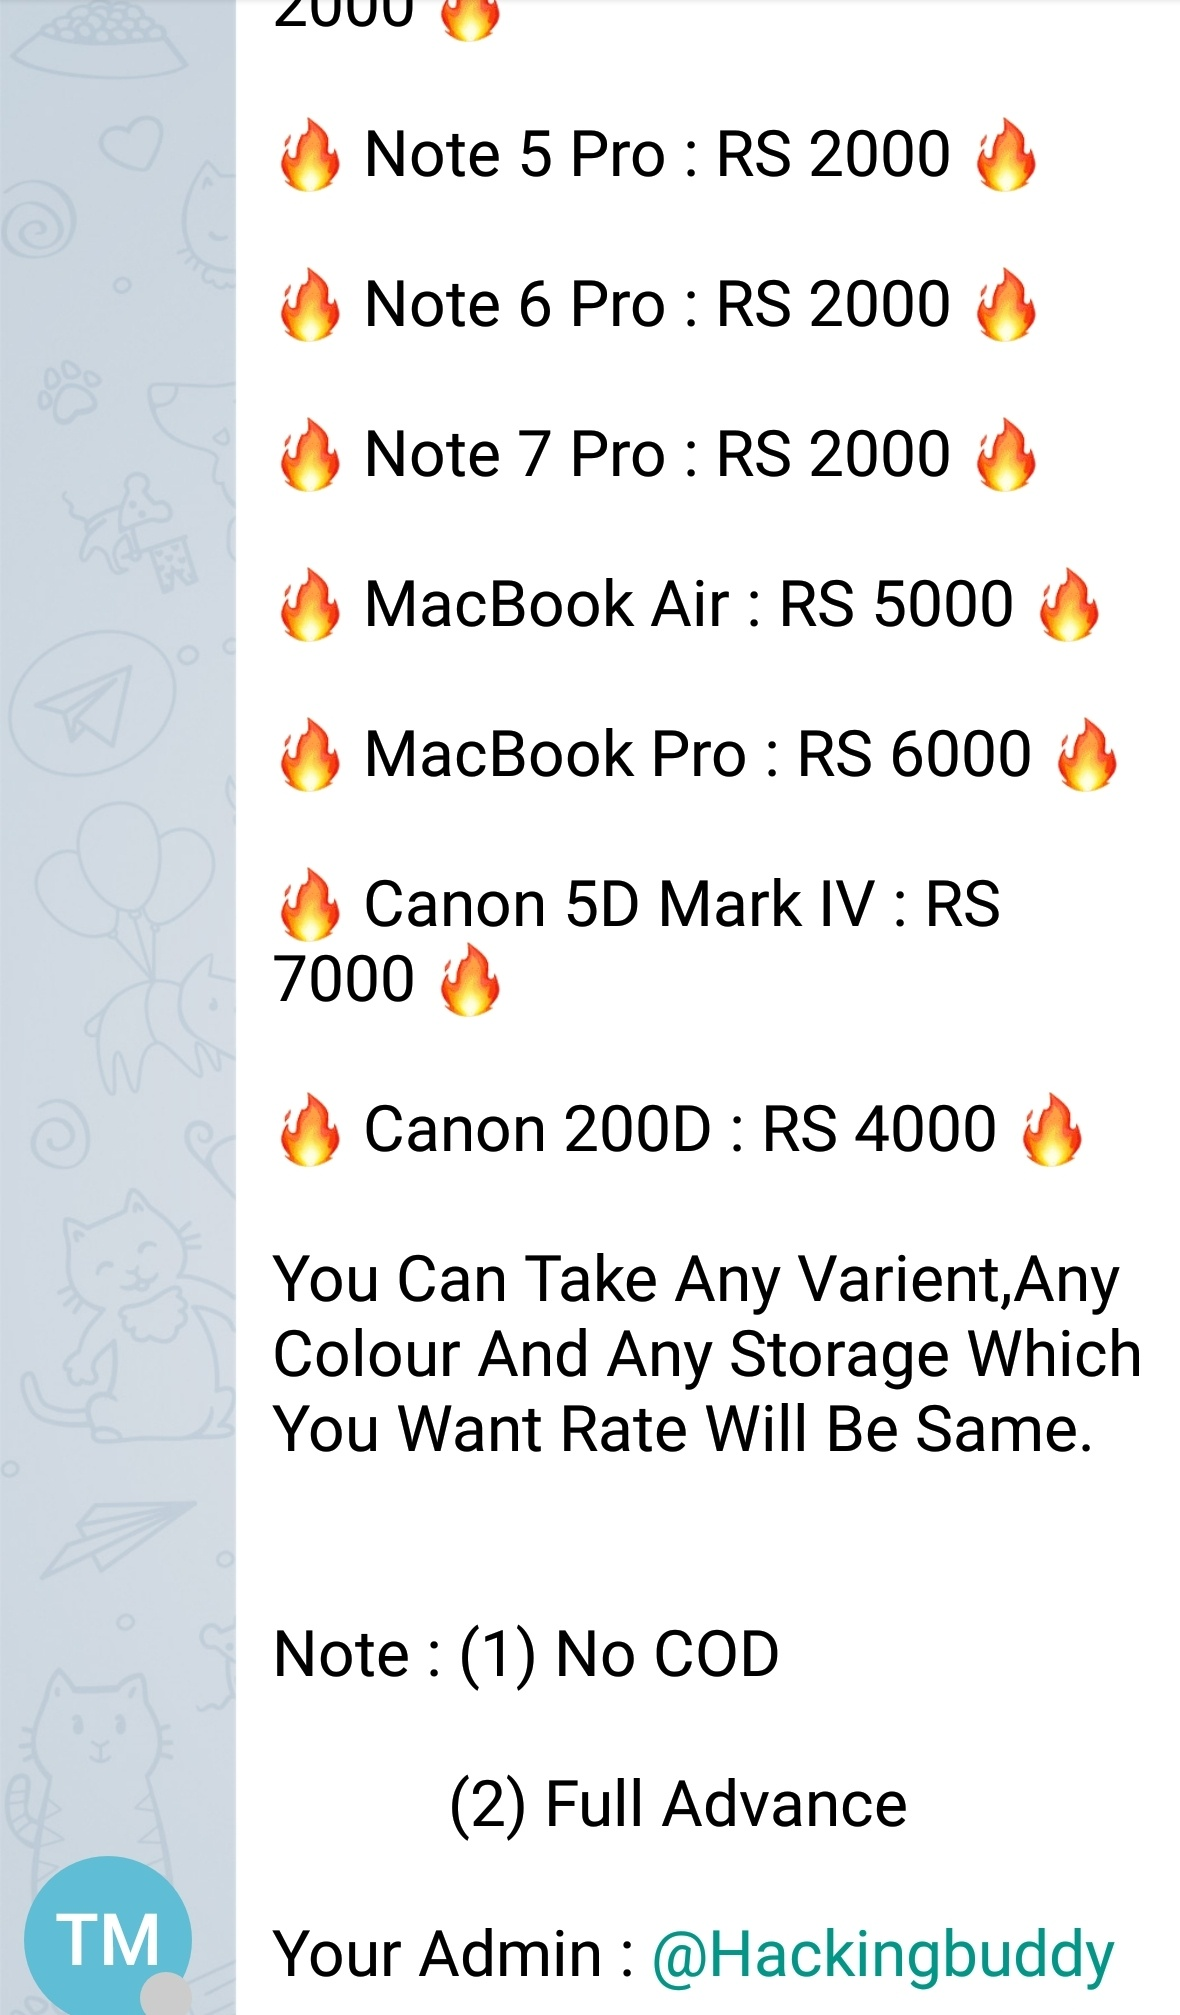 Is Amazon carding advertisement through telegram believable